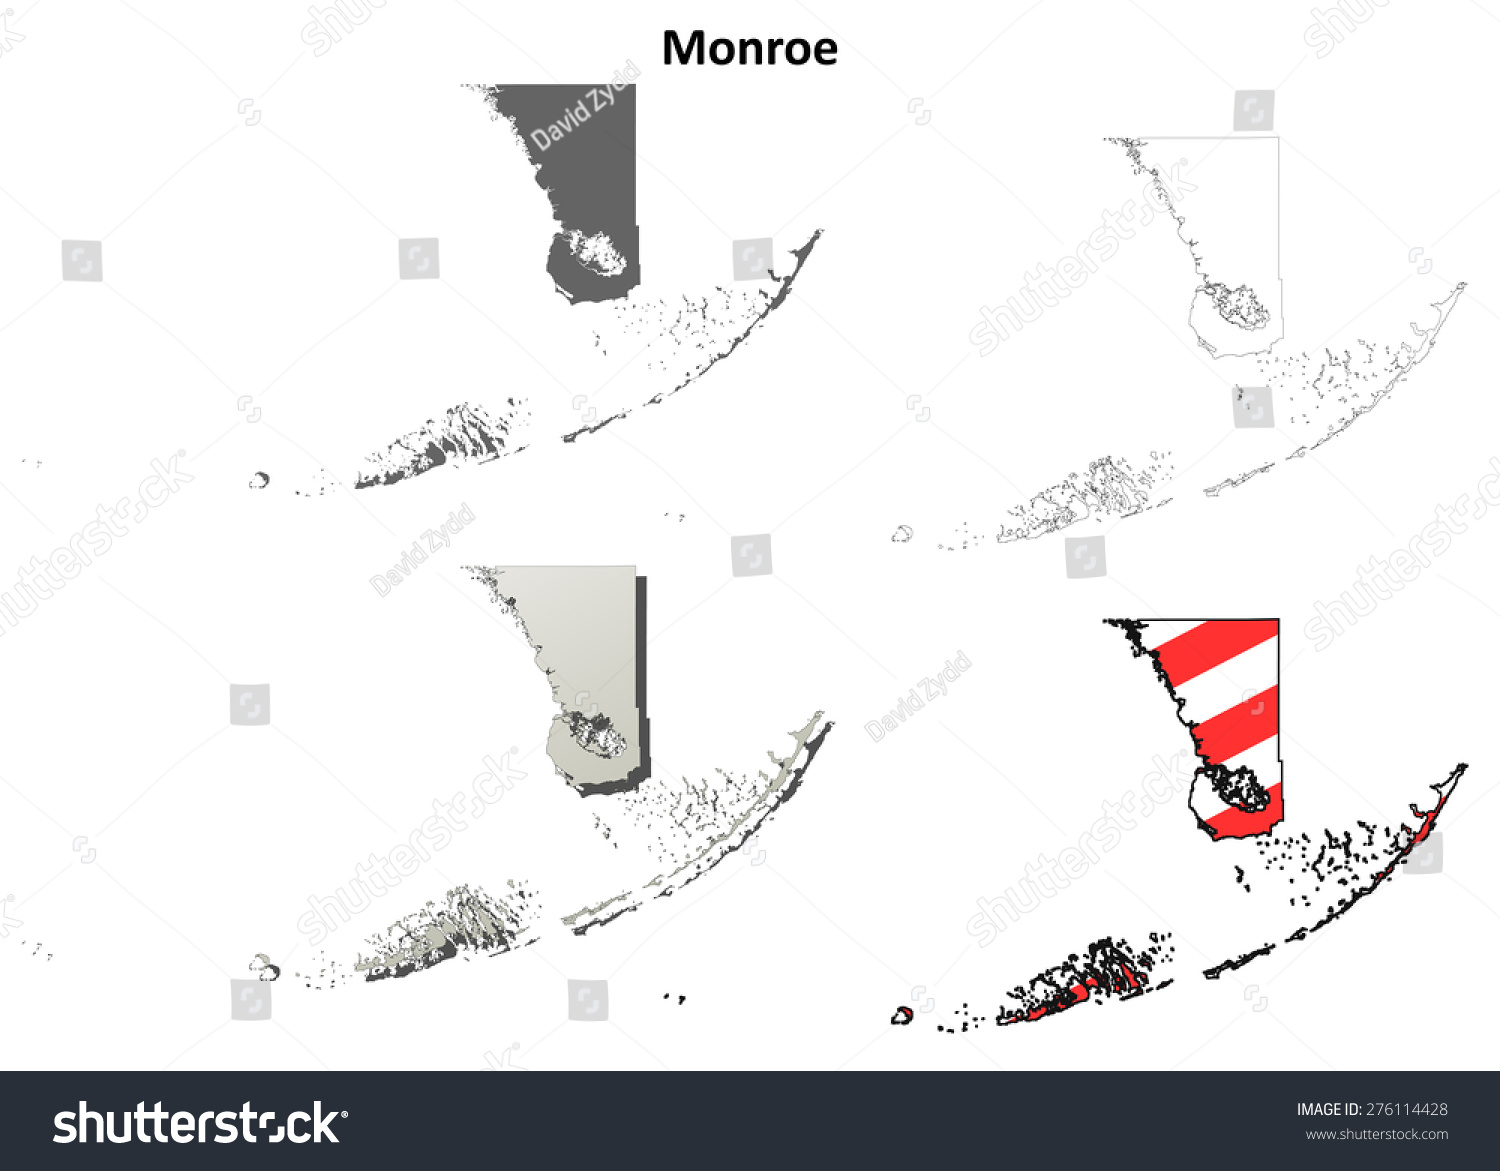 stock-vector-monroe-county-florida-outline-map-set-276114428 Universal Turn Signal Switch Wiring Diagram Vintage Hot Rod on gm turn signal switch diagram, ford turn signal switch diagram, flhx turn signal wire diagram, 2858 turn signal switch diagram, 3 wire led light wiring diagram, truck-lite turn signal diagram, chevy turn signal diagram, universal turn signal parts diagram, gmc 3500 truck wiring diagram,